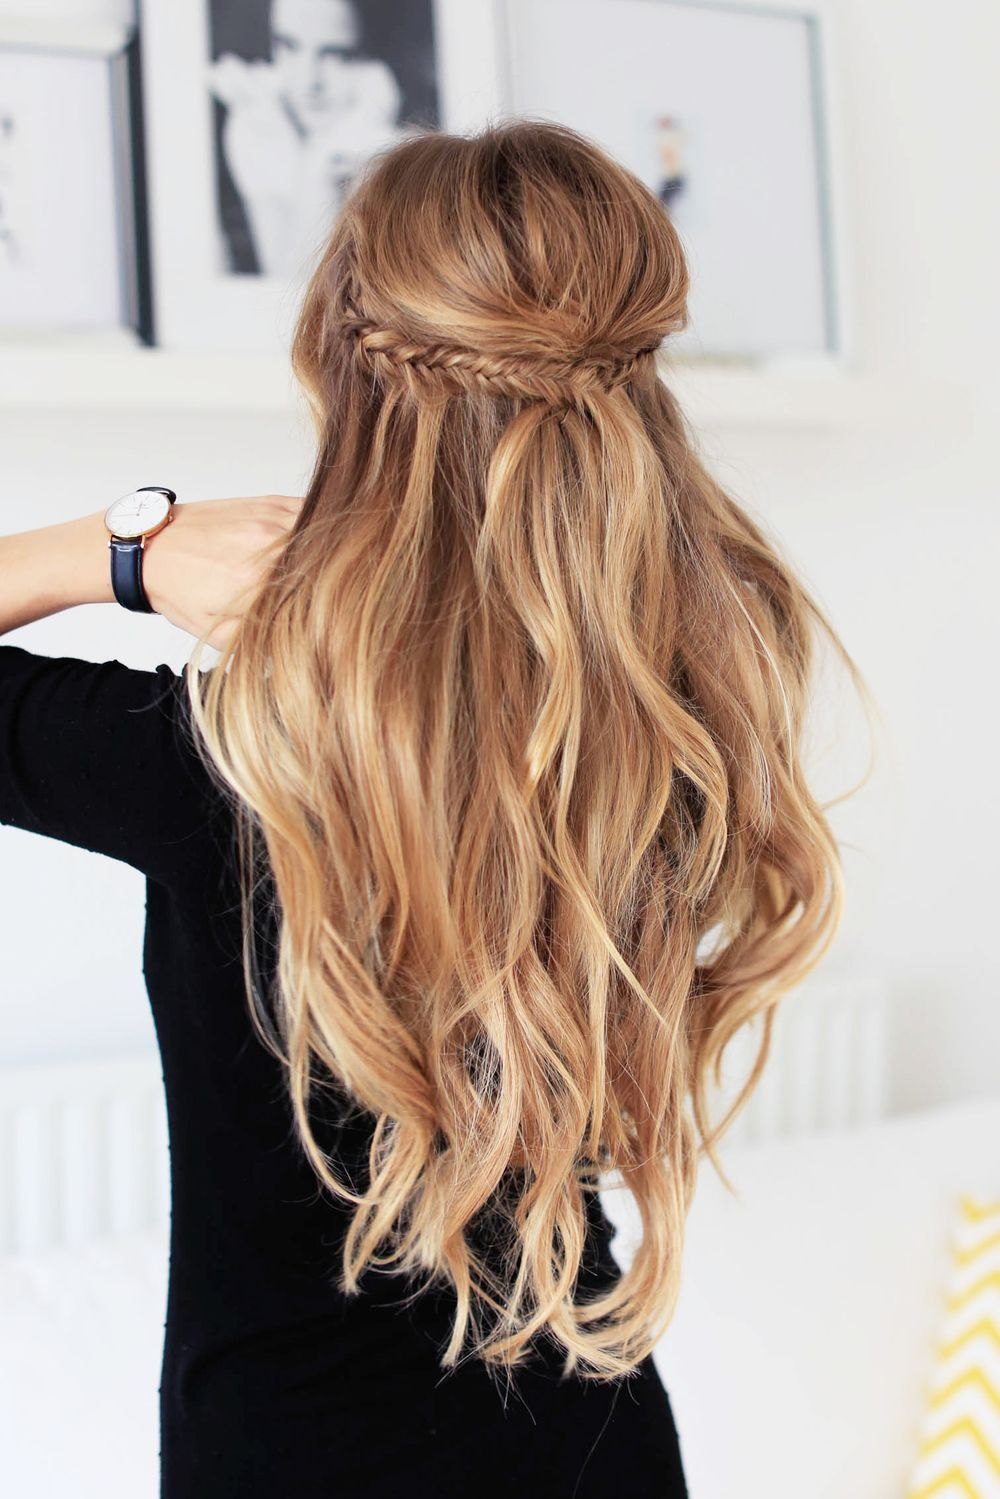 Pin By Jessica Mosley On Extensions Long Hair Pinterest Haar